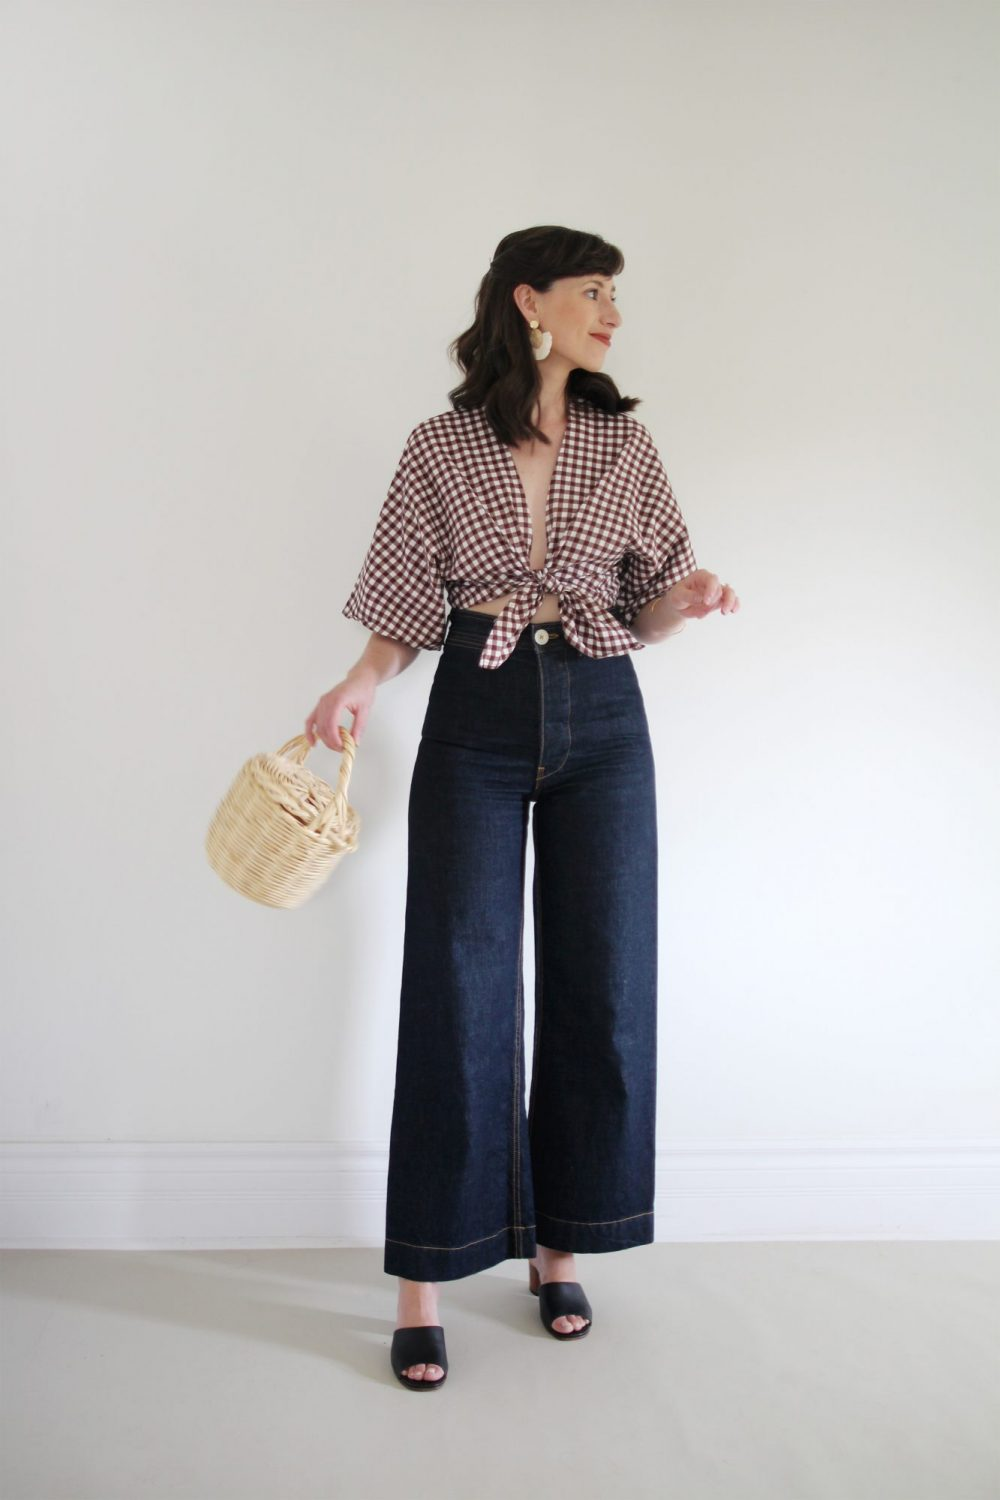 Style Bee - August Outfits - Look 7 - Gingham Tie Top + Dark Wide Leg Pants + Minimal Block Heel Shoes + Birkin Basket Bag + Raffia Earrings